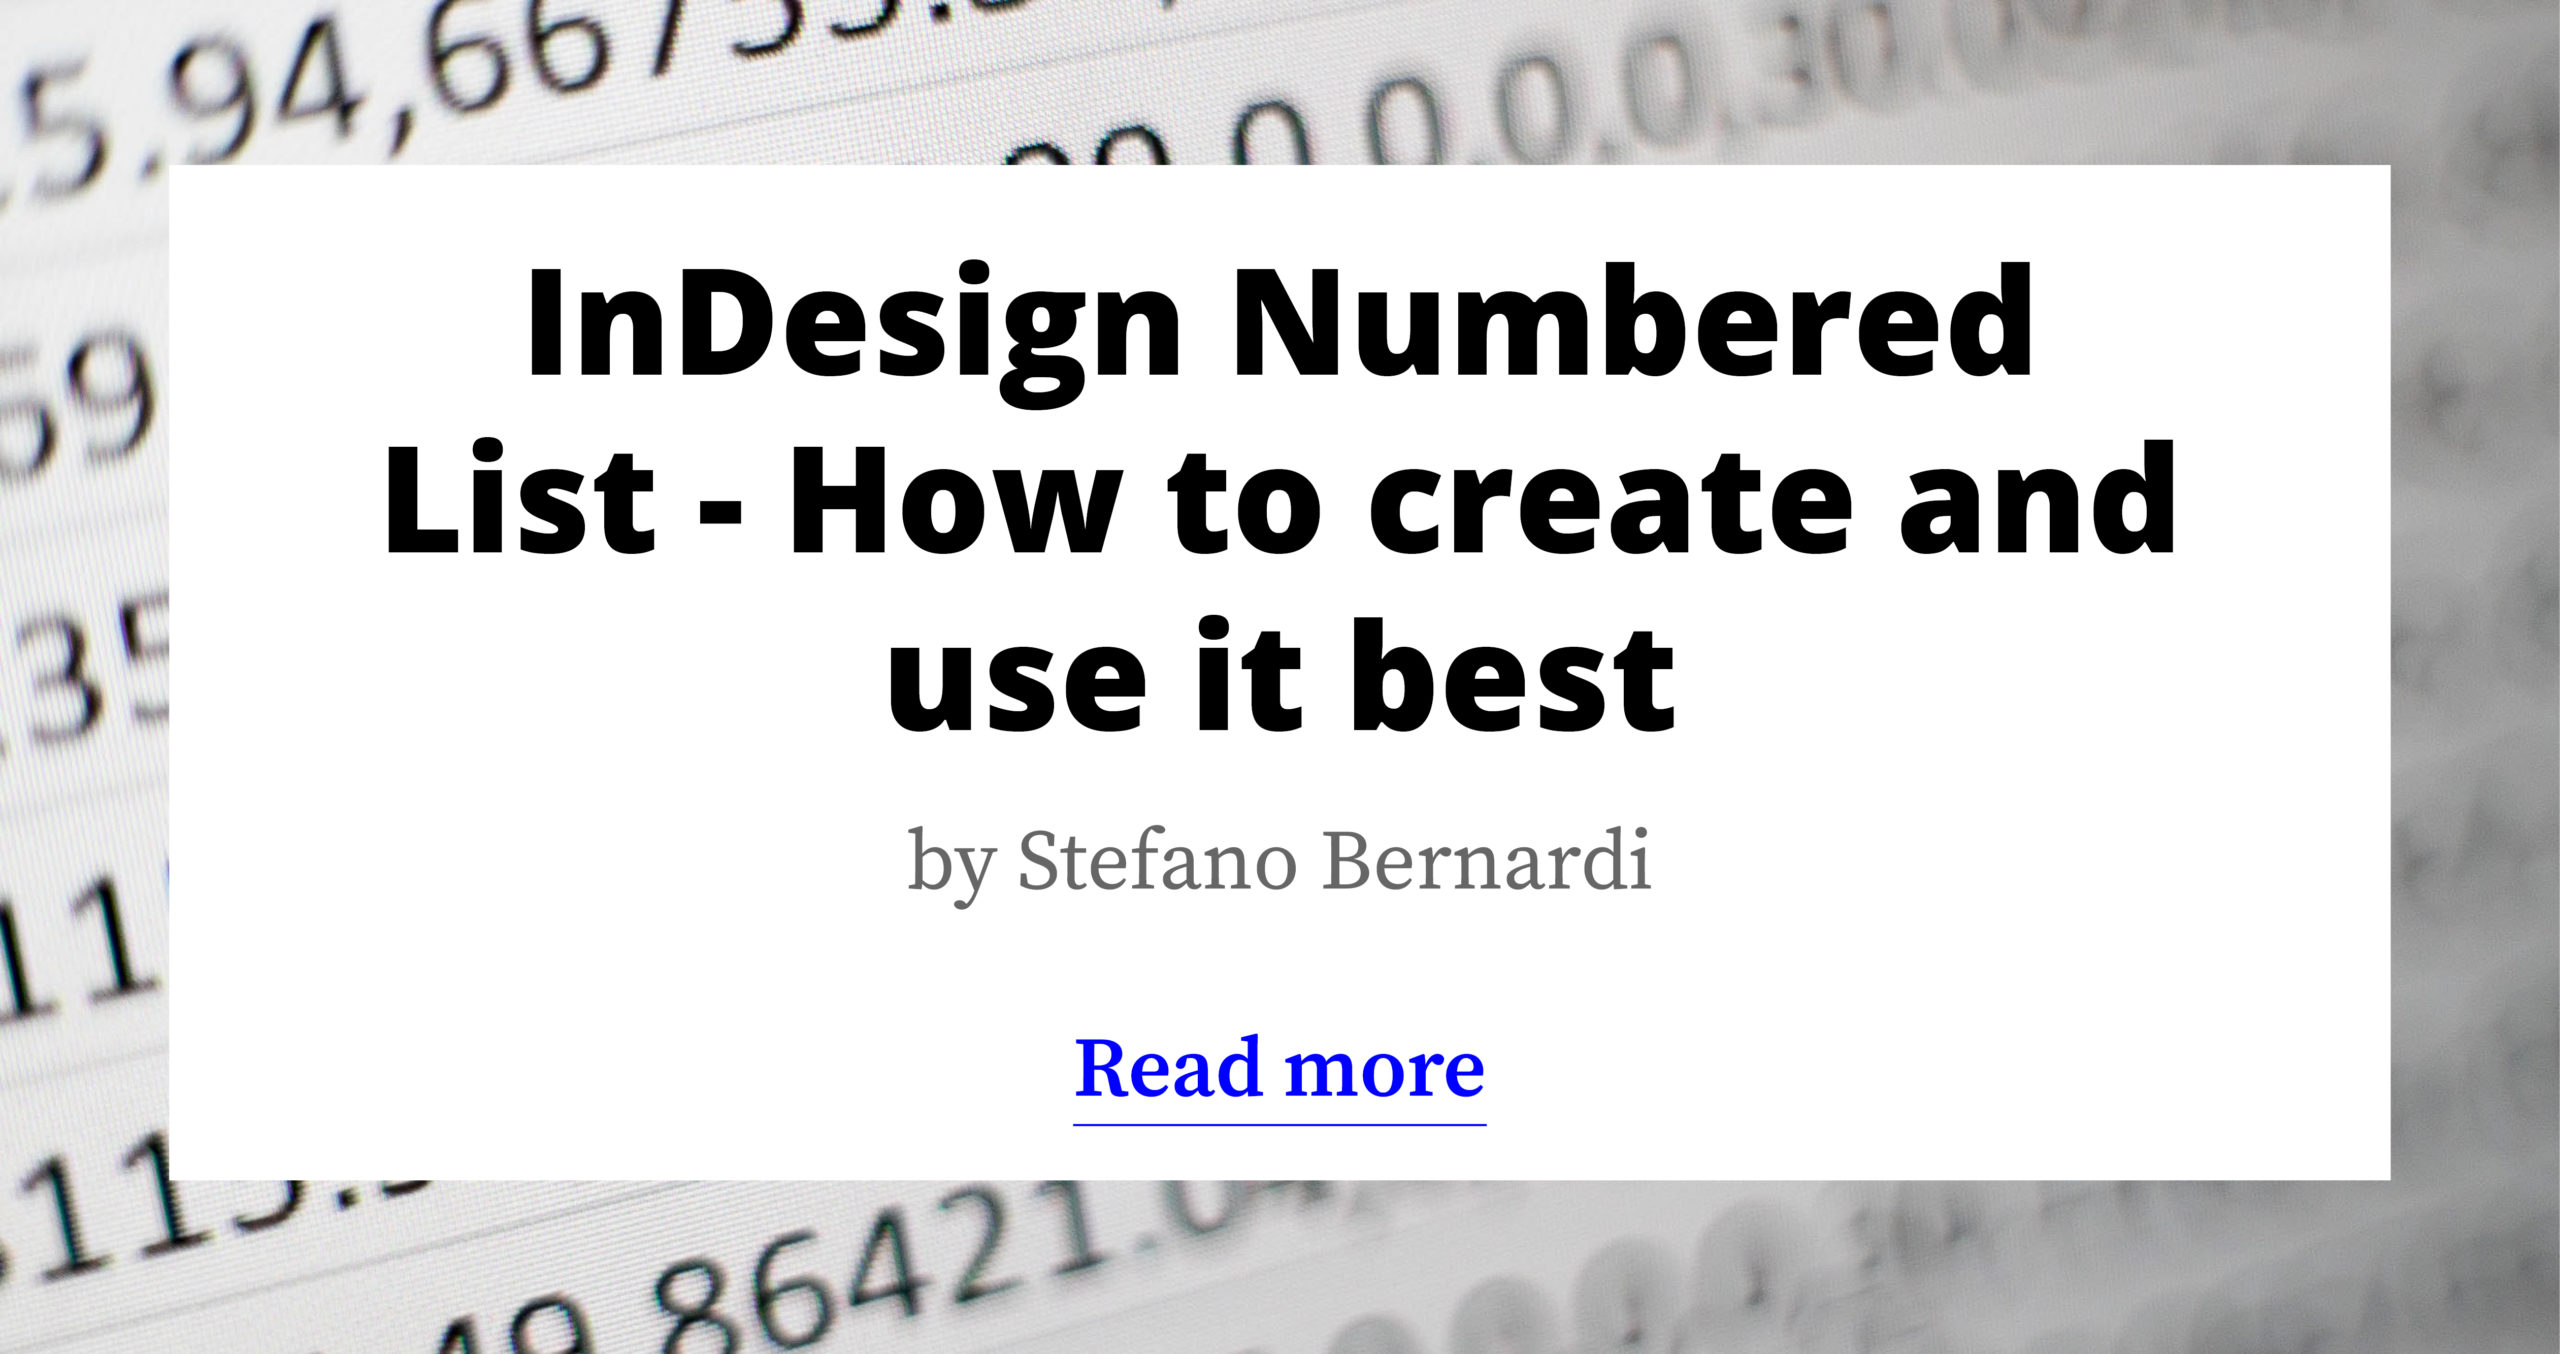 InDesign Numbered List - How to create and use it best